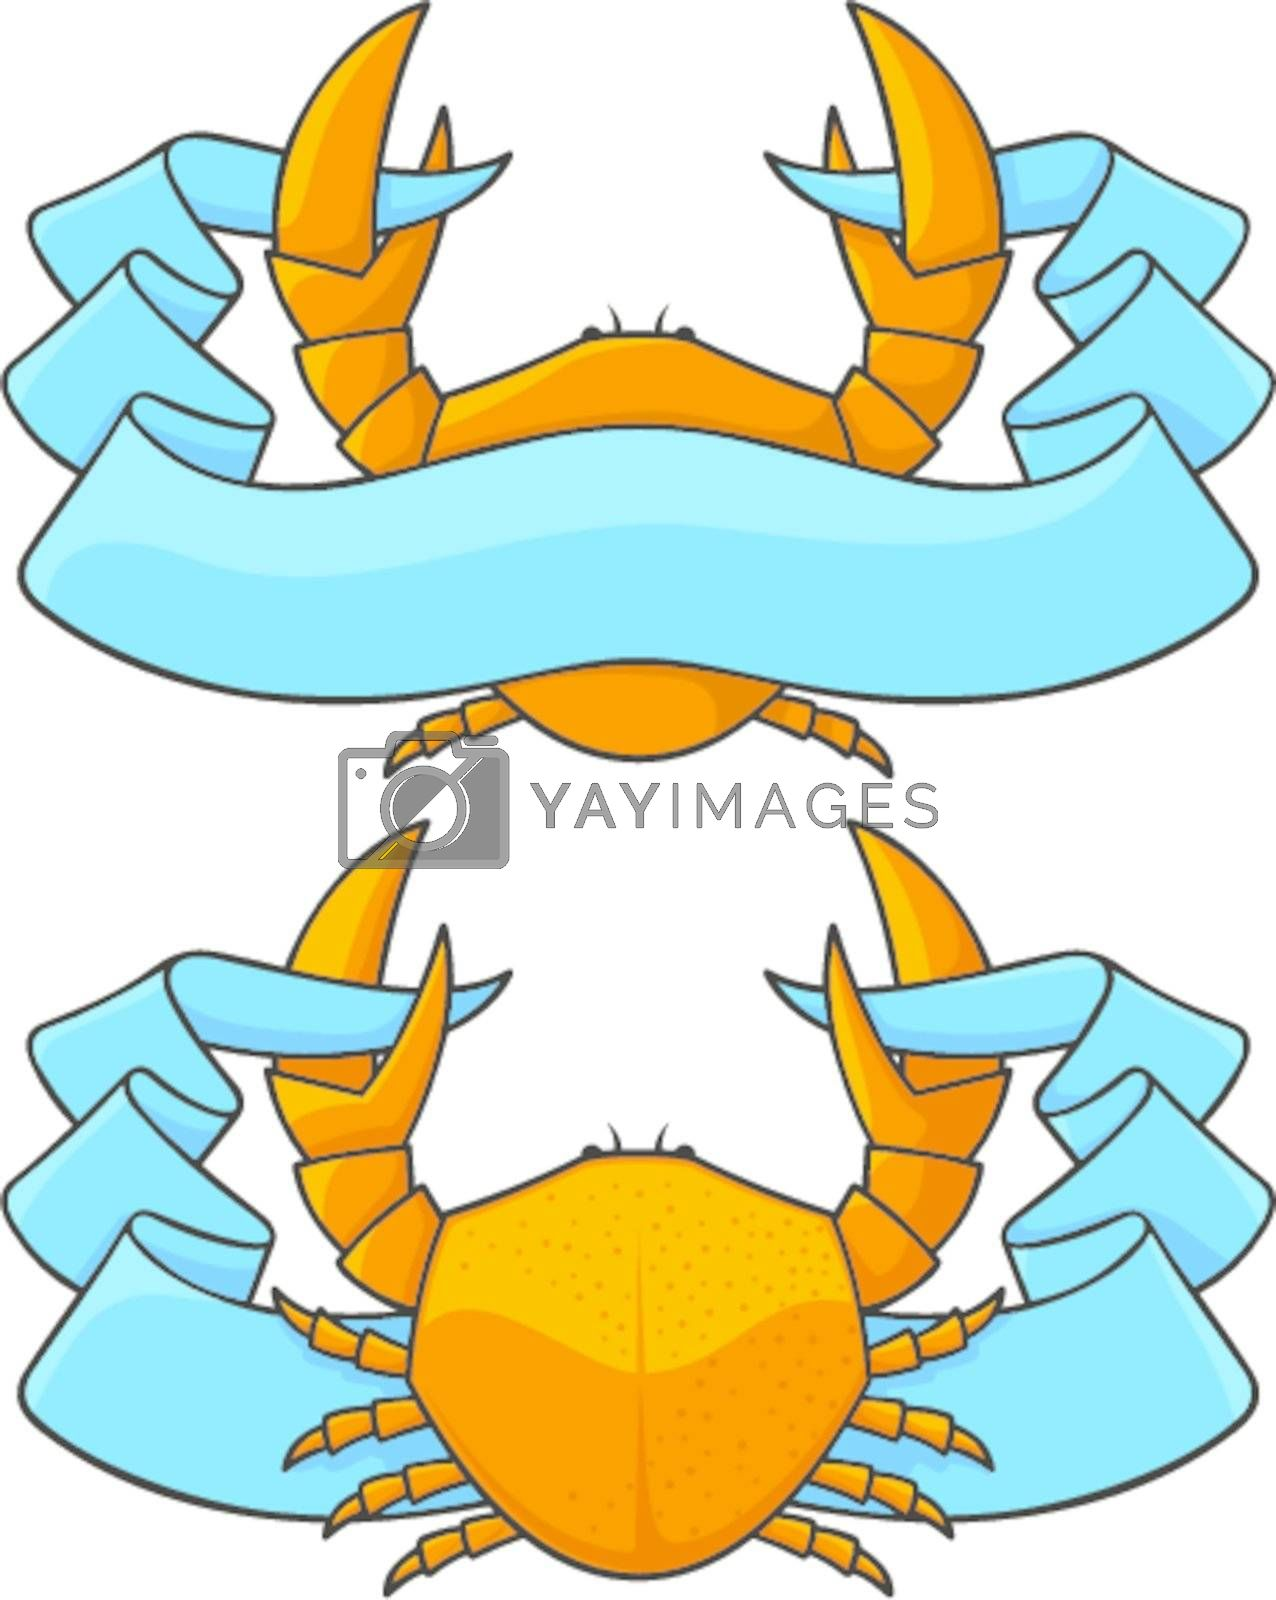 Crab with banner by sifis